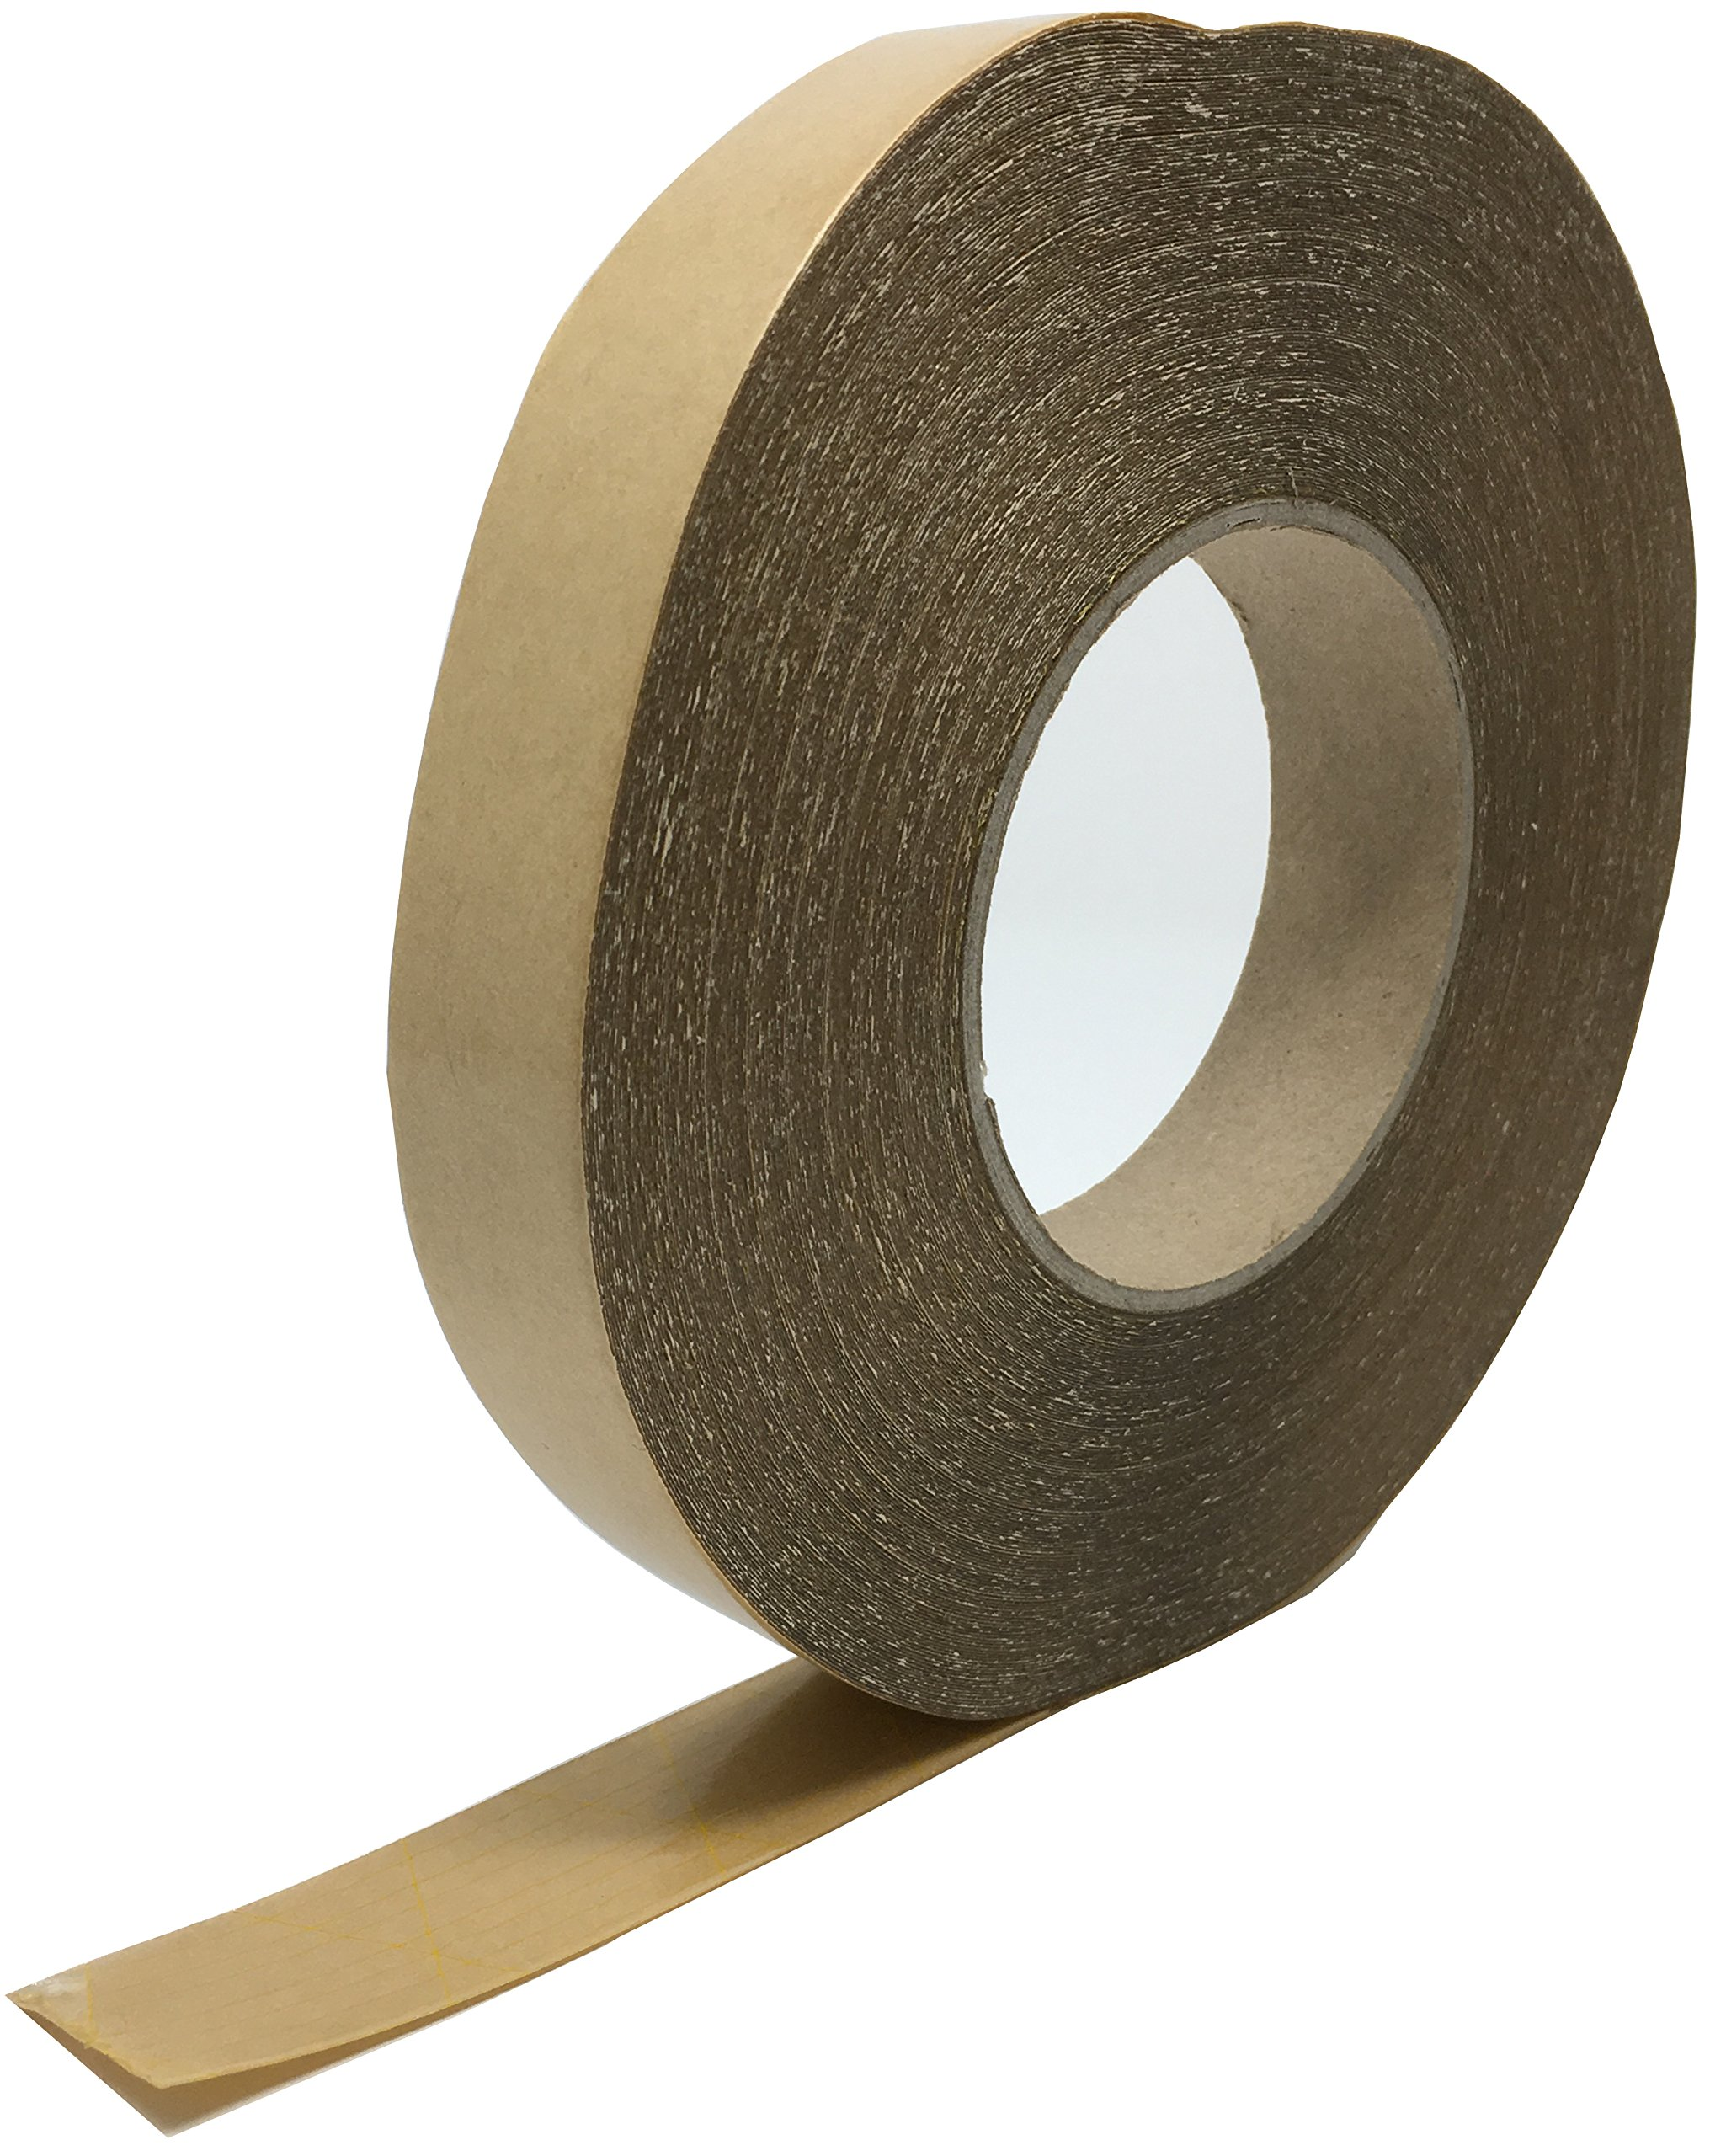 Flooring Power Tape Adhesive System - Double Sided Acrylic Adhesive Tape - Use for Carpet, Cove Base, Transitions, Vinyl, Rubber - Acrylic Adhesive Bonds Instantly - 1'' Wide X 164'' Long